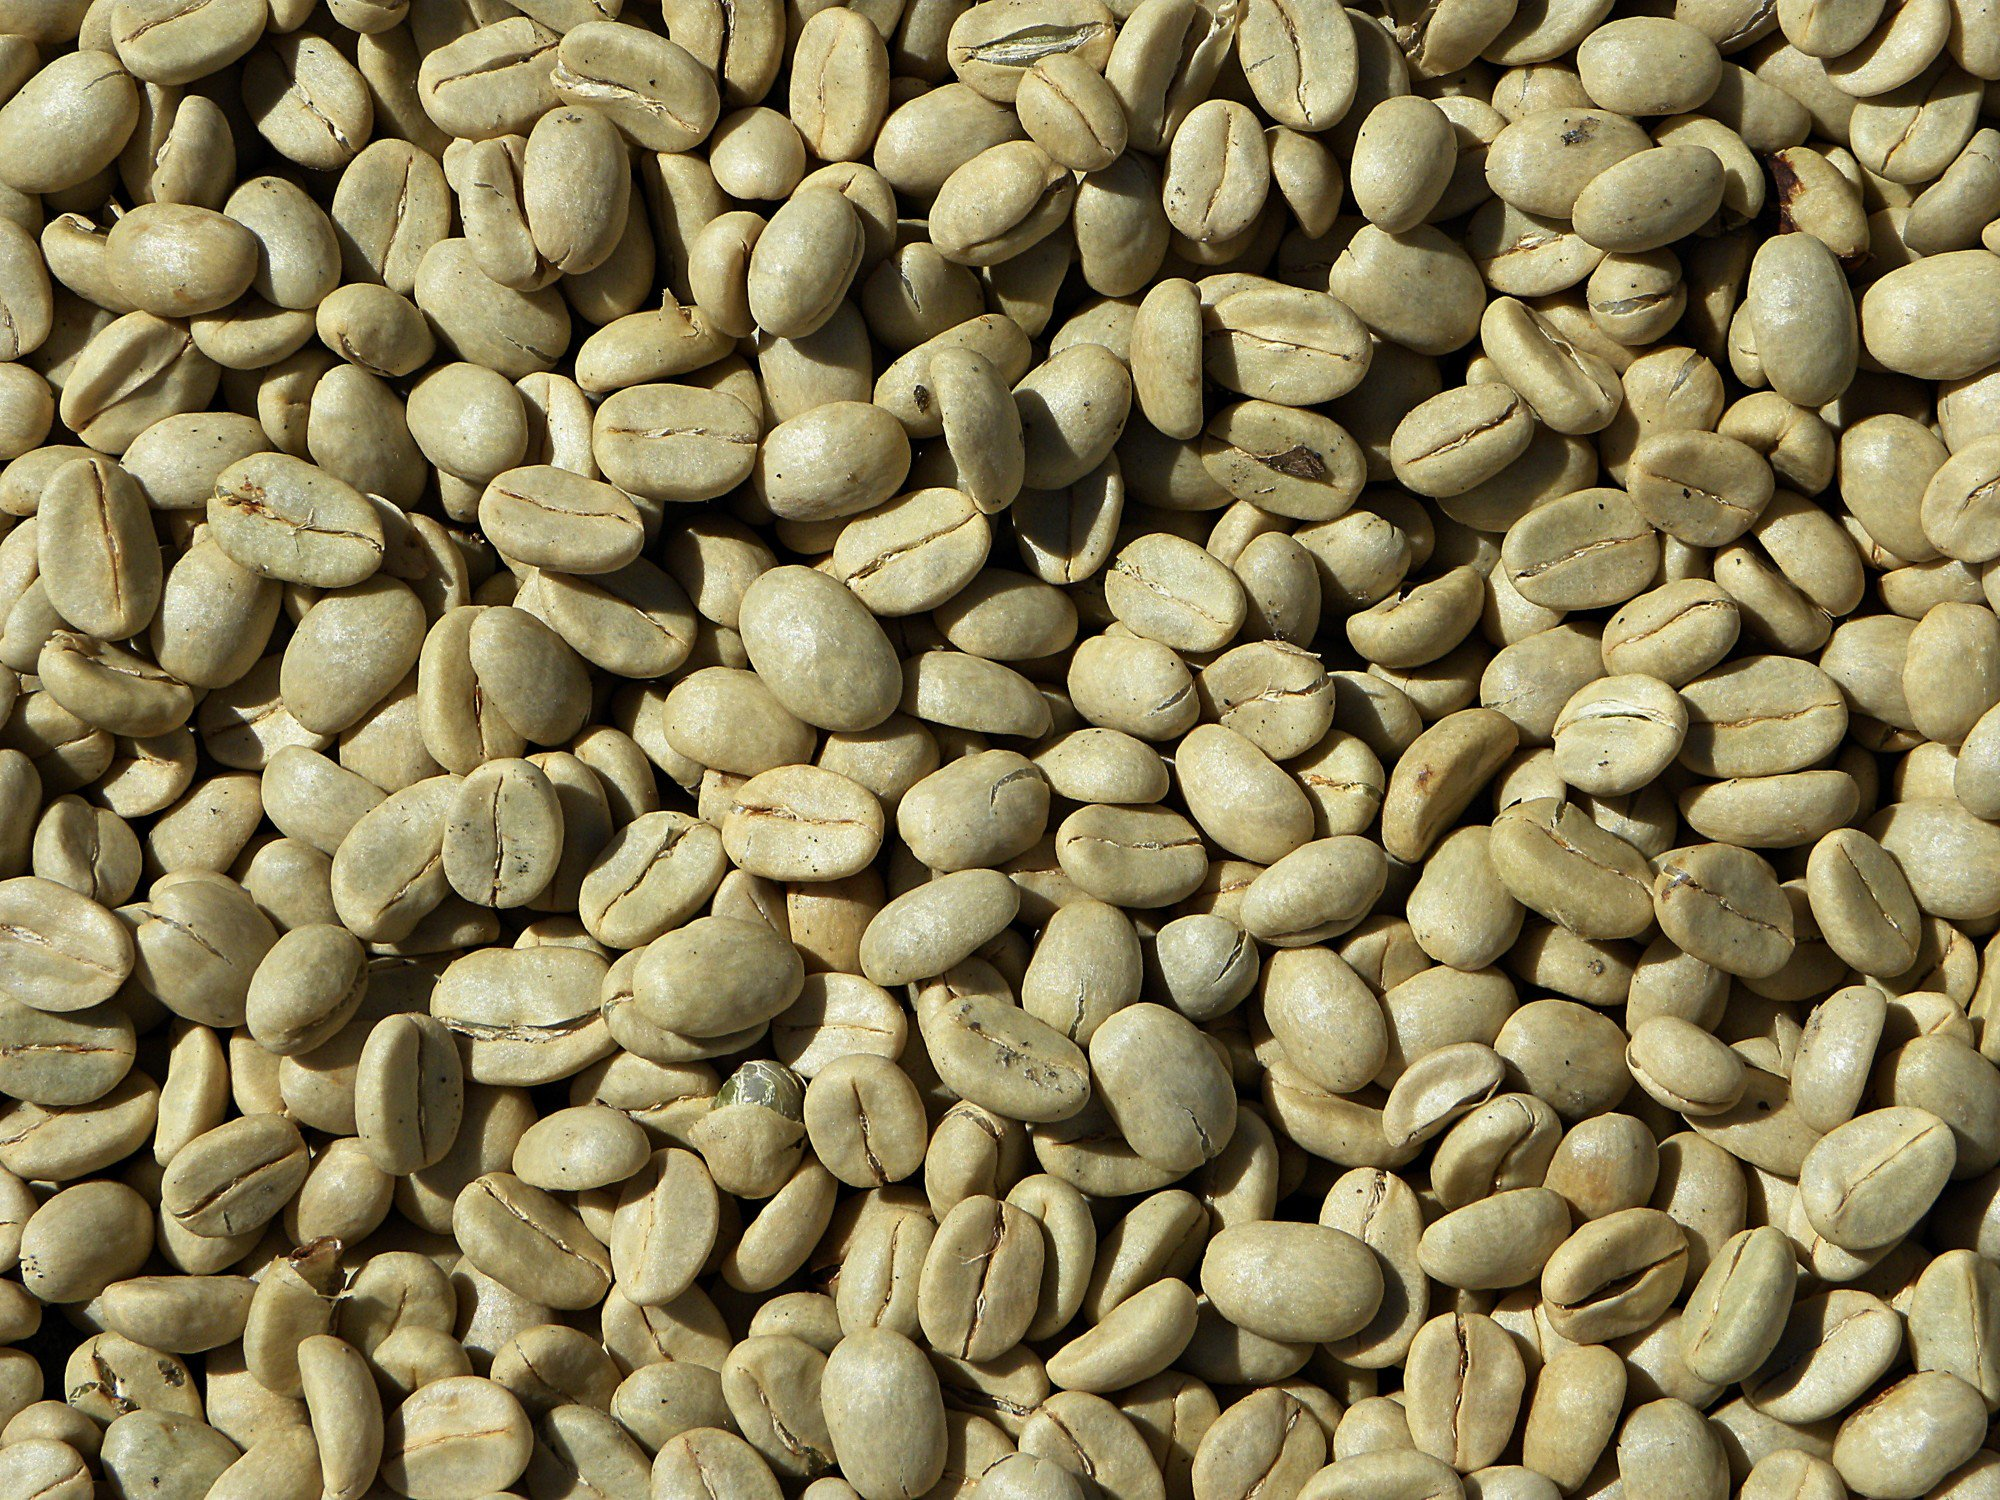 Common Questions Asked About Unroasted Green Coffee Beans